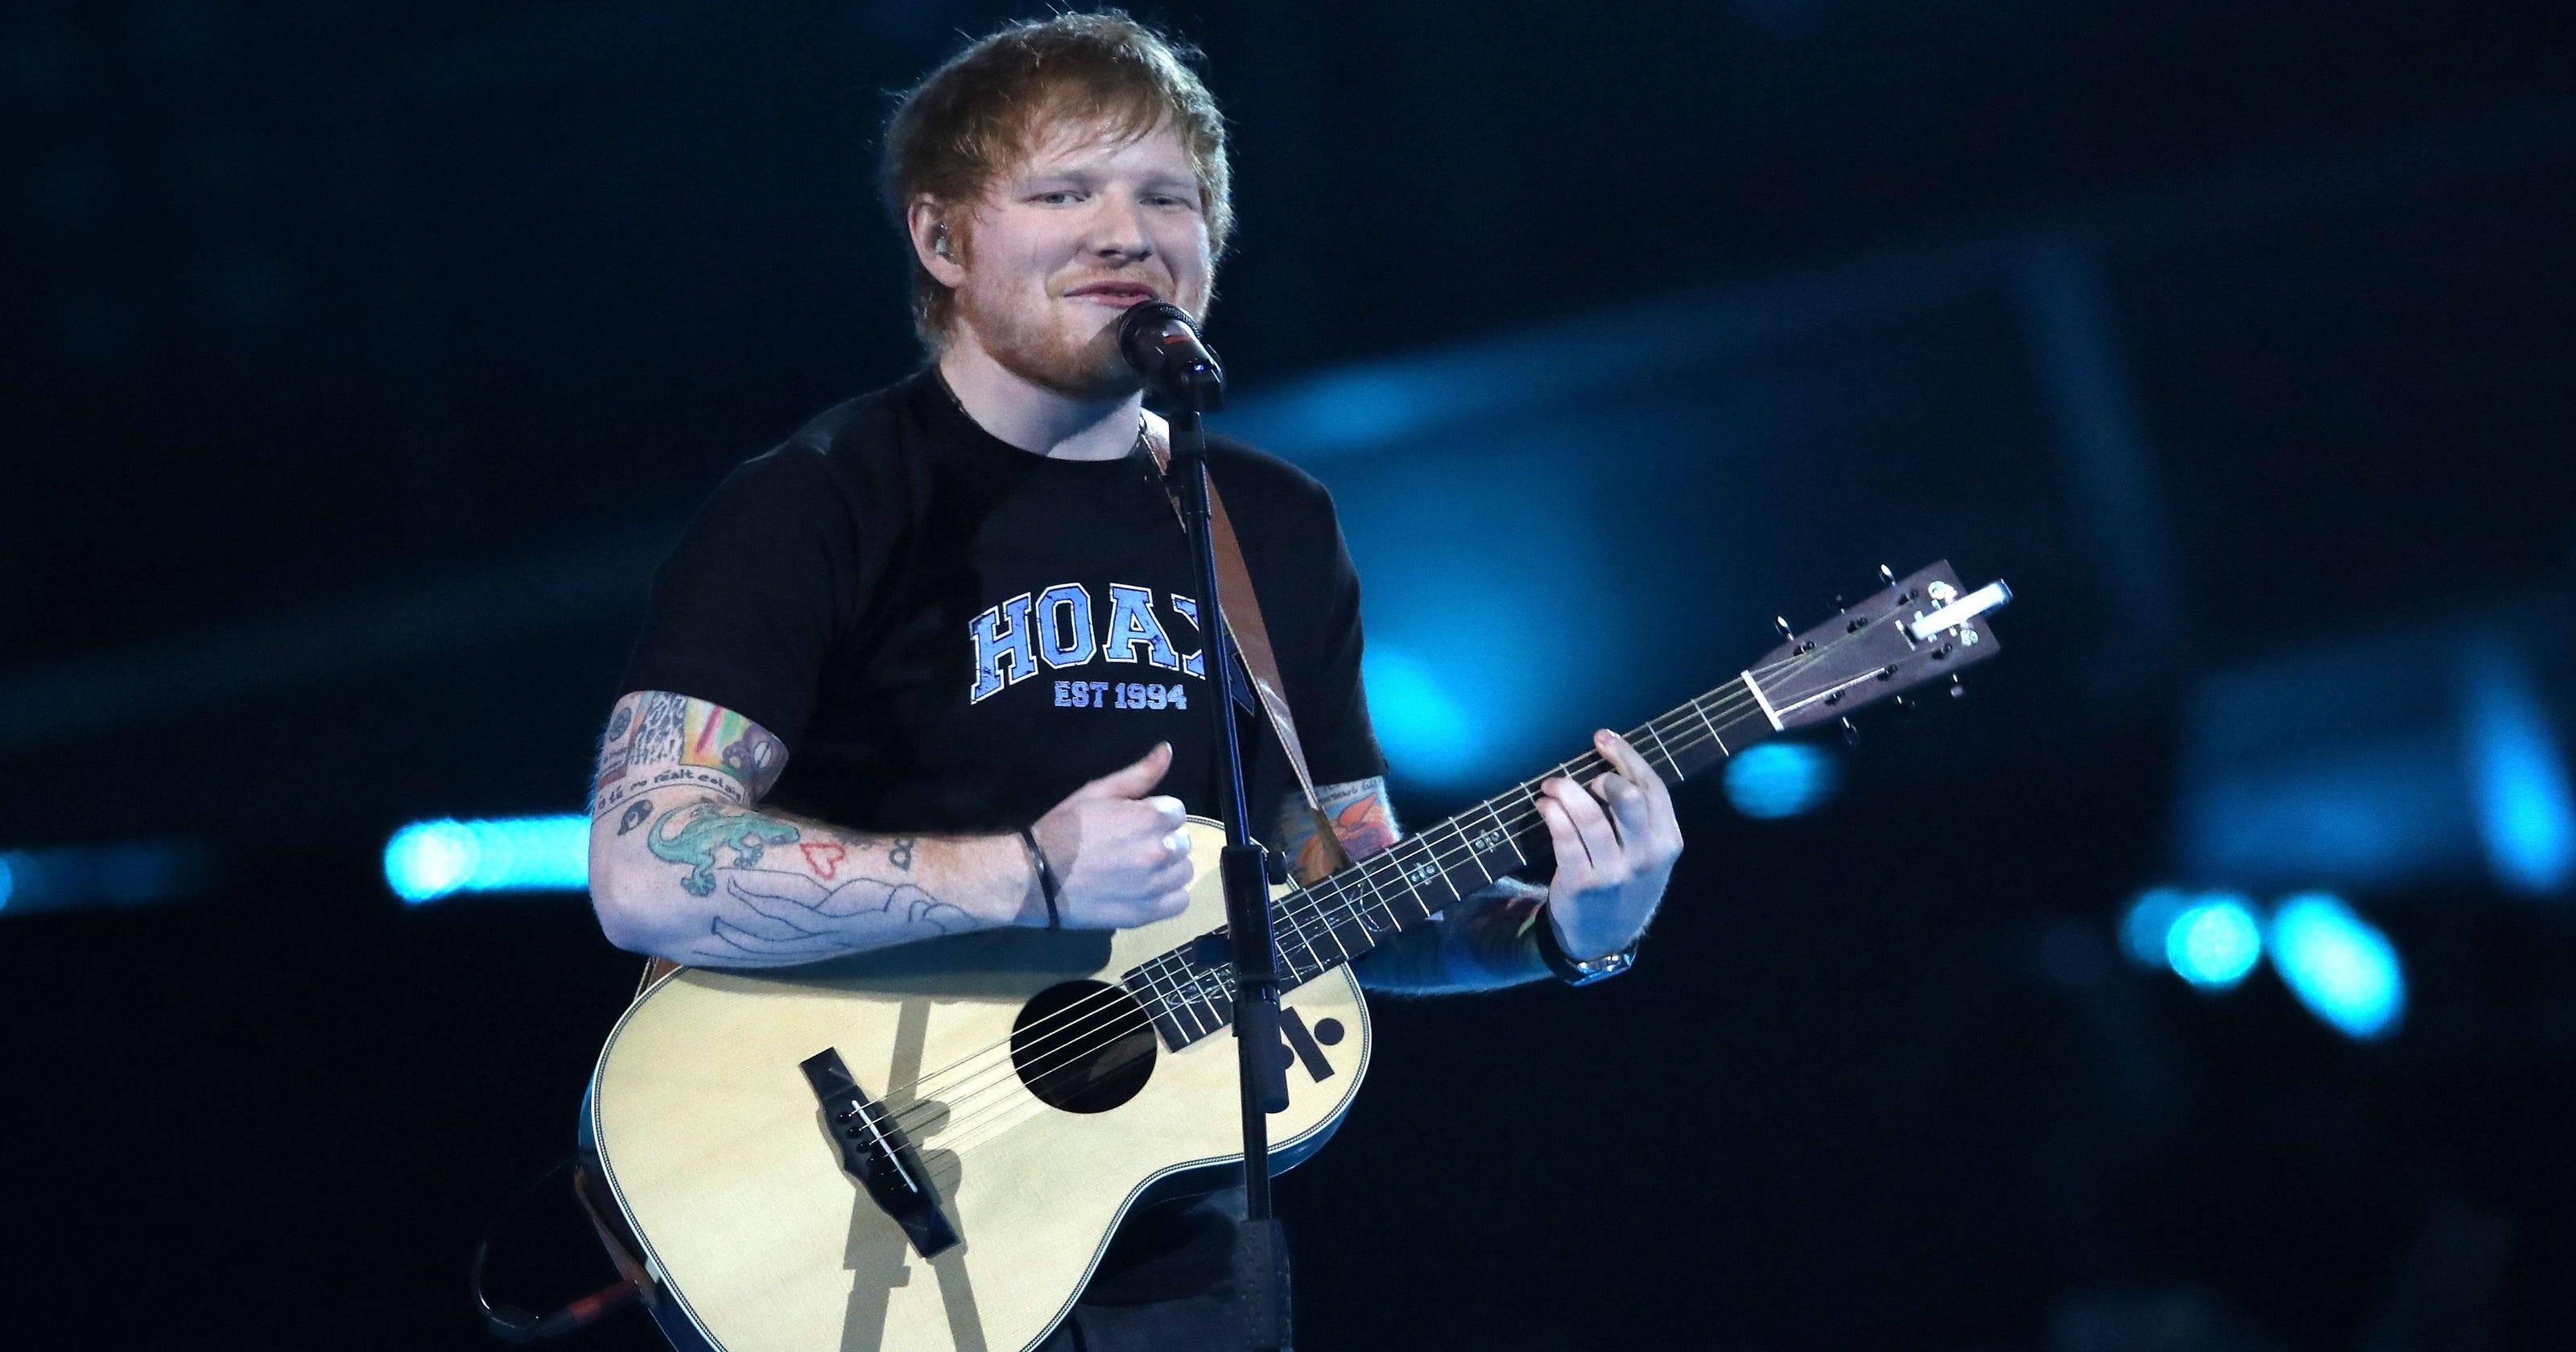 5 songs you didn't know Ed Sheeran wrote